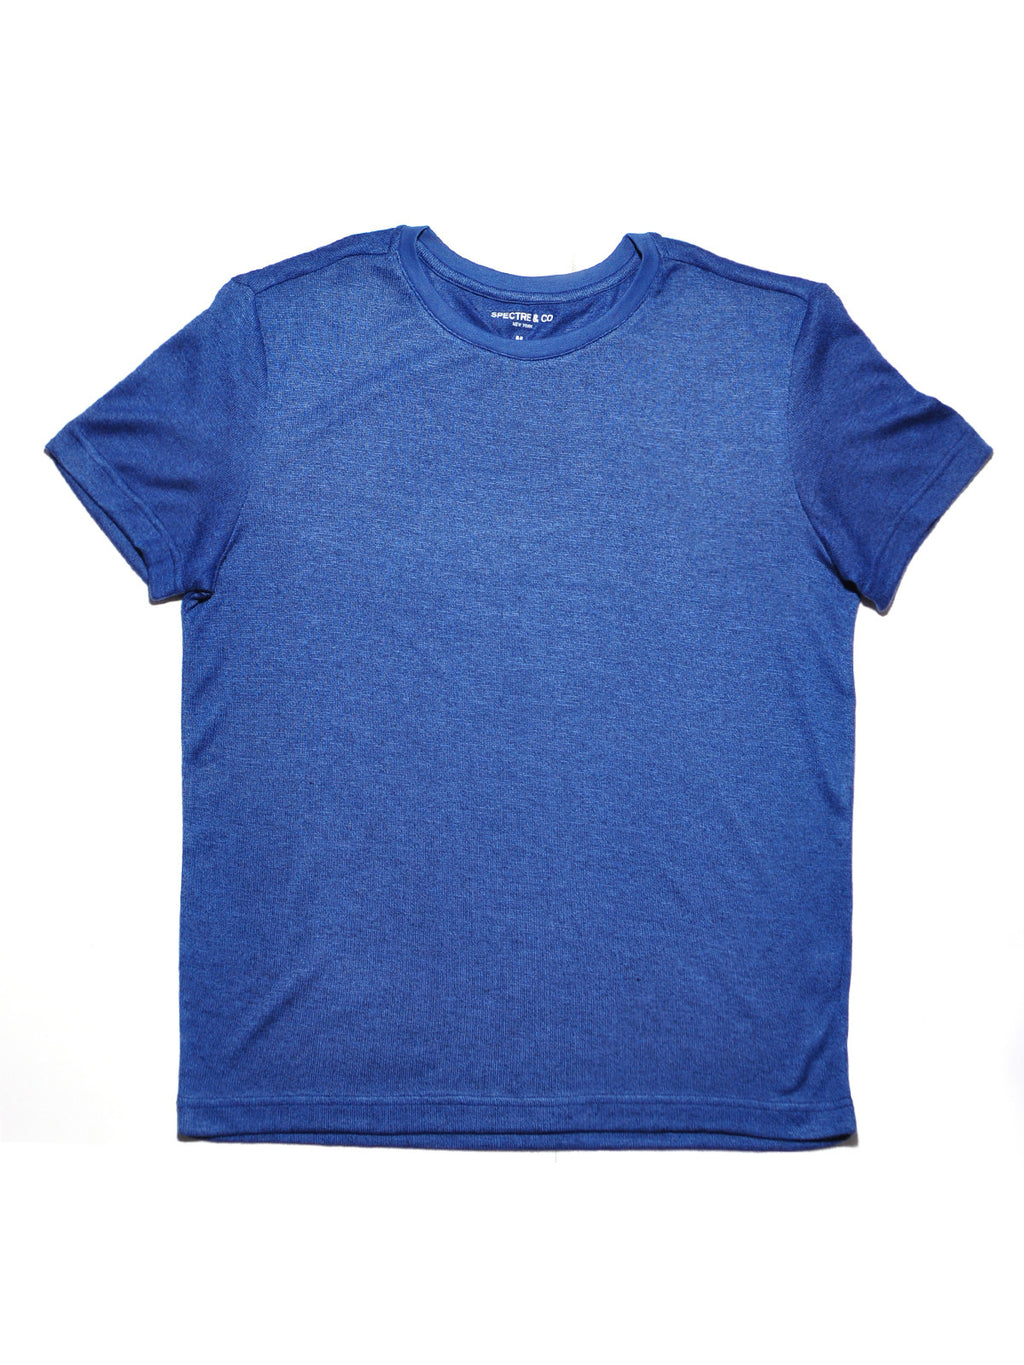 Blue Knit Tee Shirt